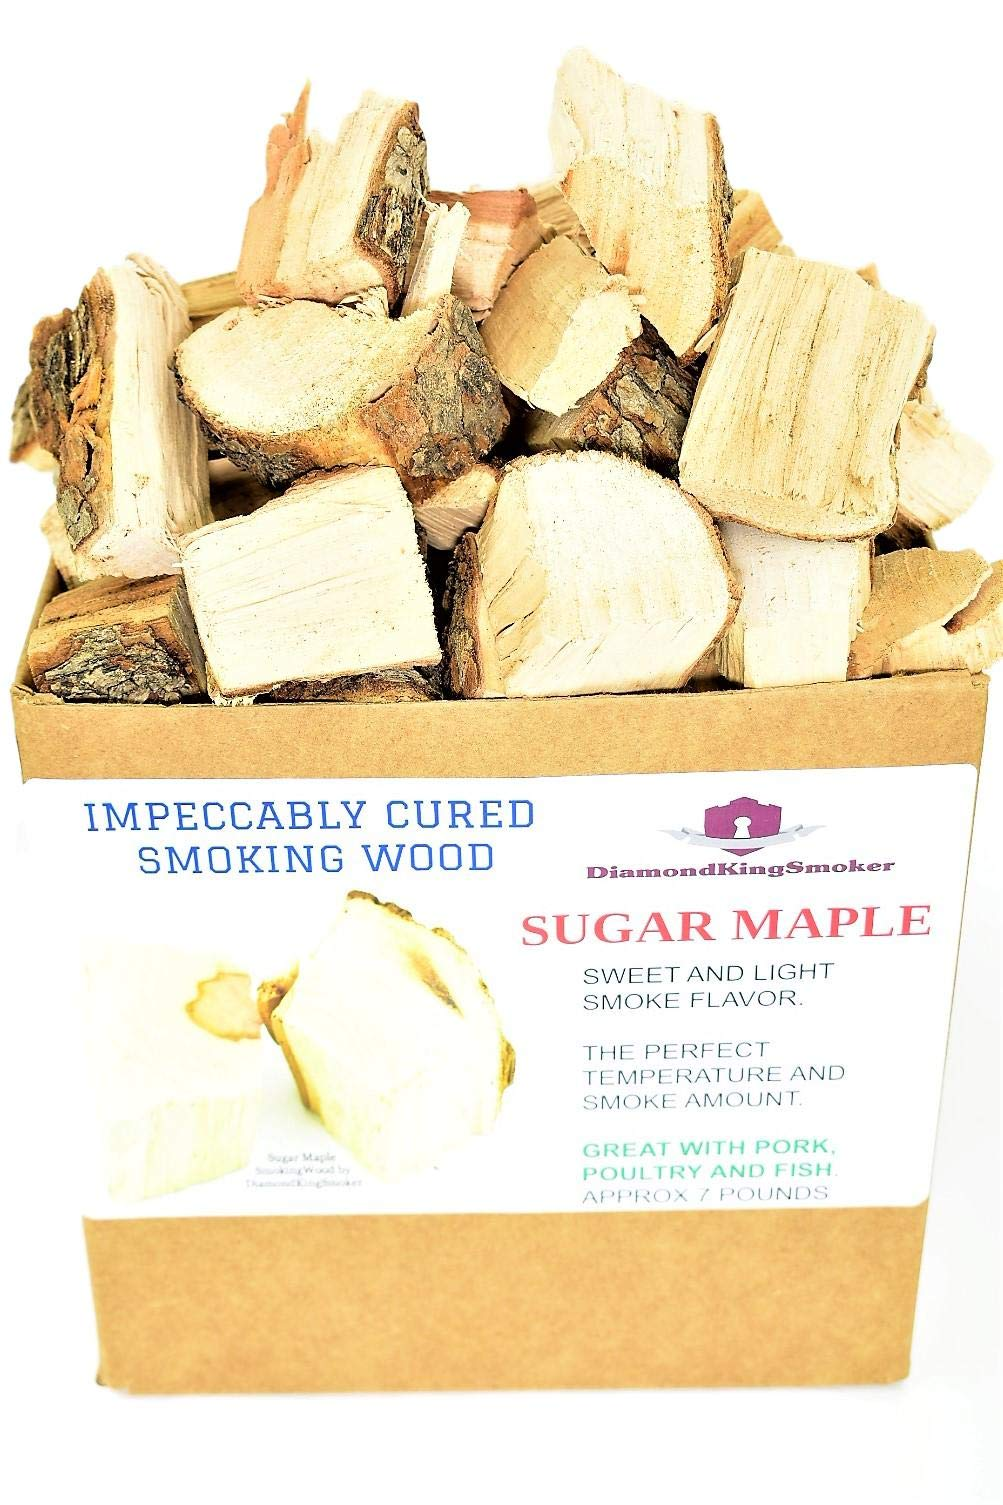 DiamondKingSmoker Smoking Wood Chunks 100% All Natural Barbecue Smoker Chunks for Grilling and BBQ | Large Cut Smoker Chips | Impeccably Cured for Premium Flavor Profile (Sugar Maple, 14 lbs)